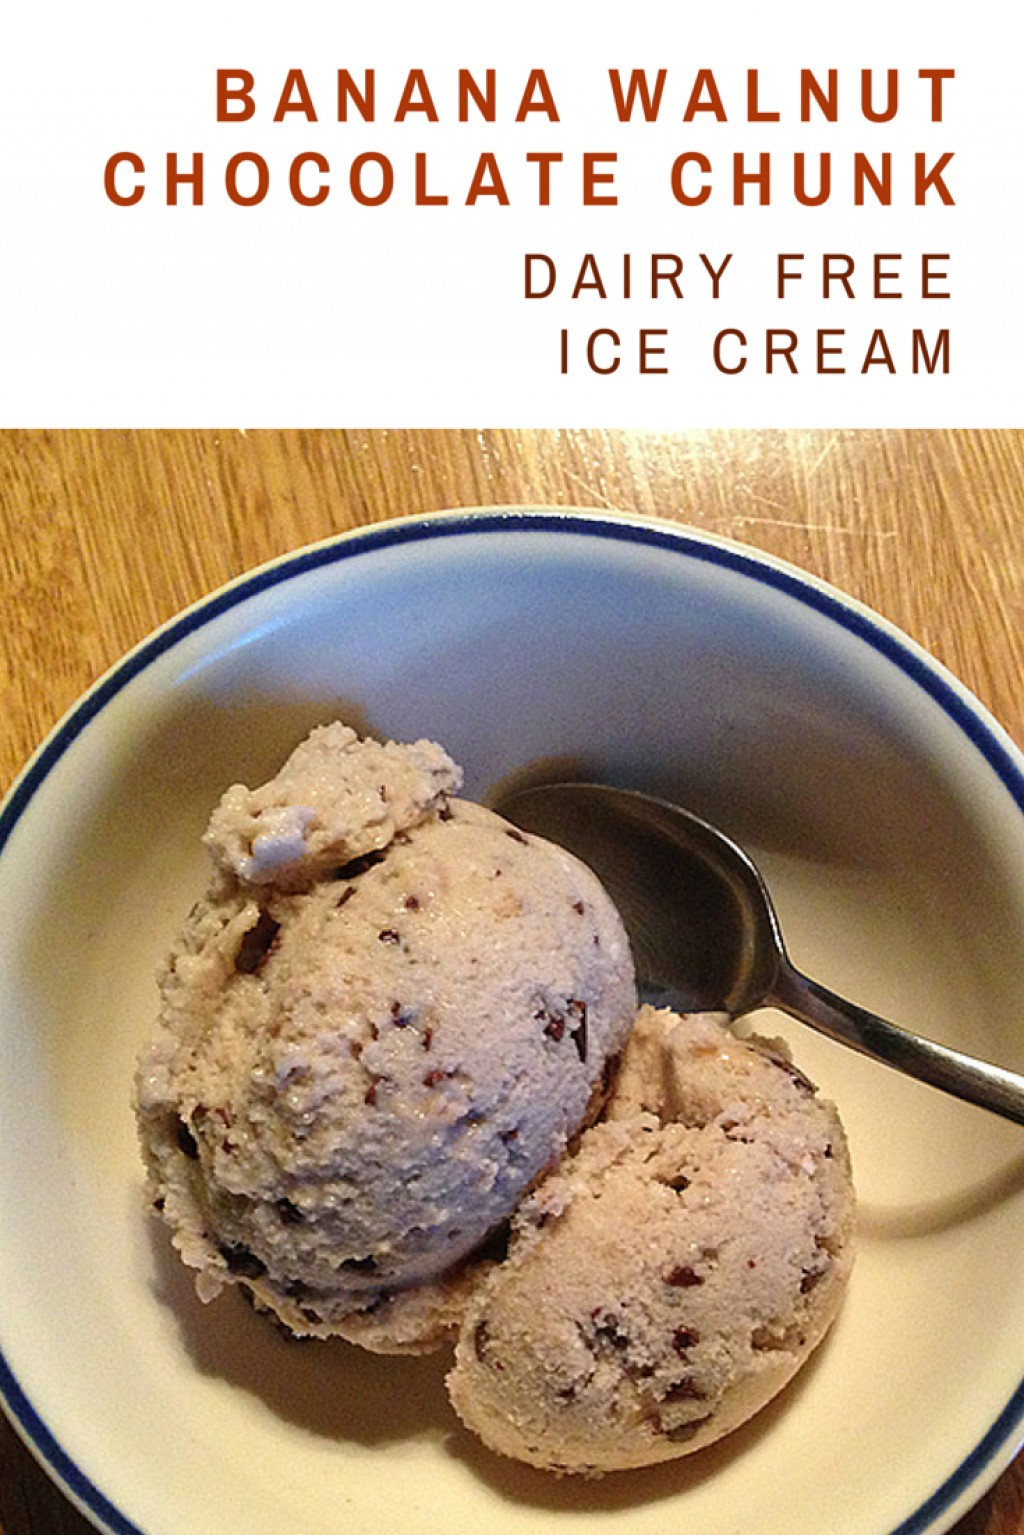 Vegan Banana Walnut Chocolate Chunk Ice Cream With Coconut Milk ...